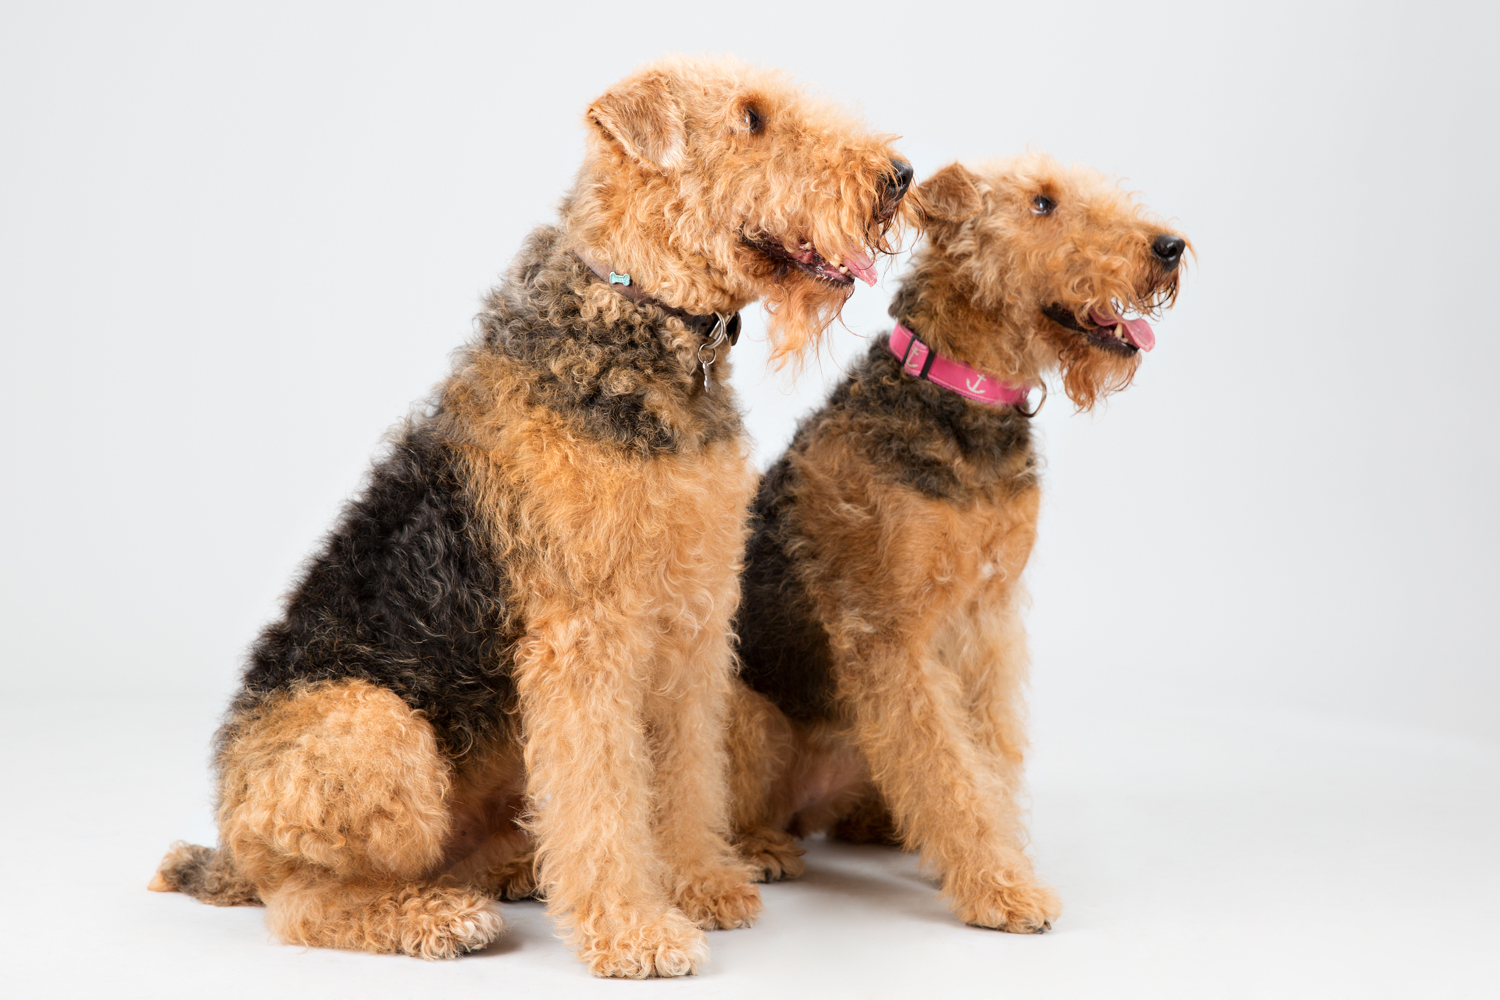 Two dogs waiting for a treat during their photo shoot